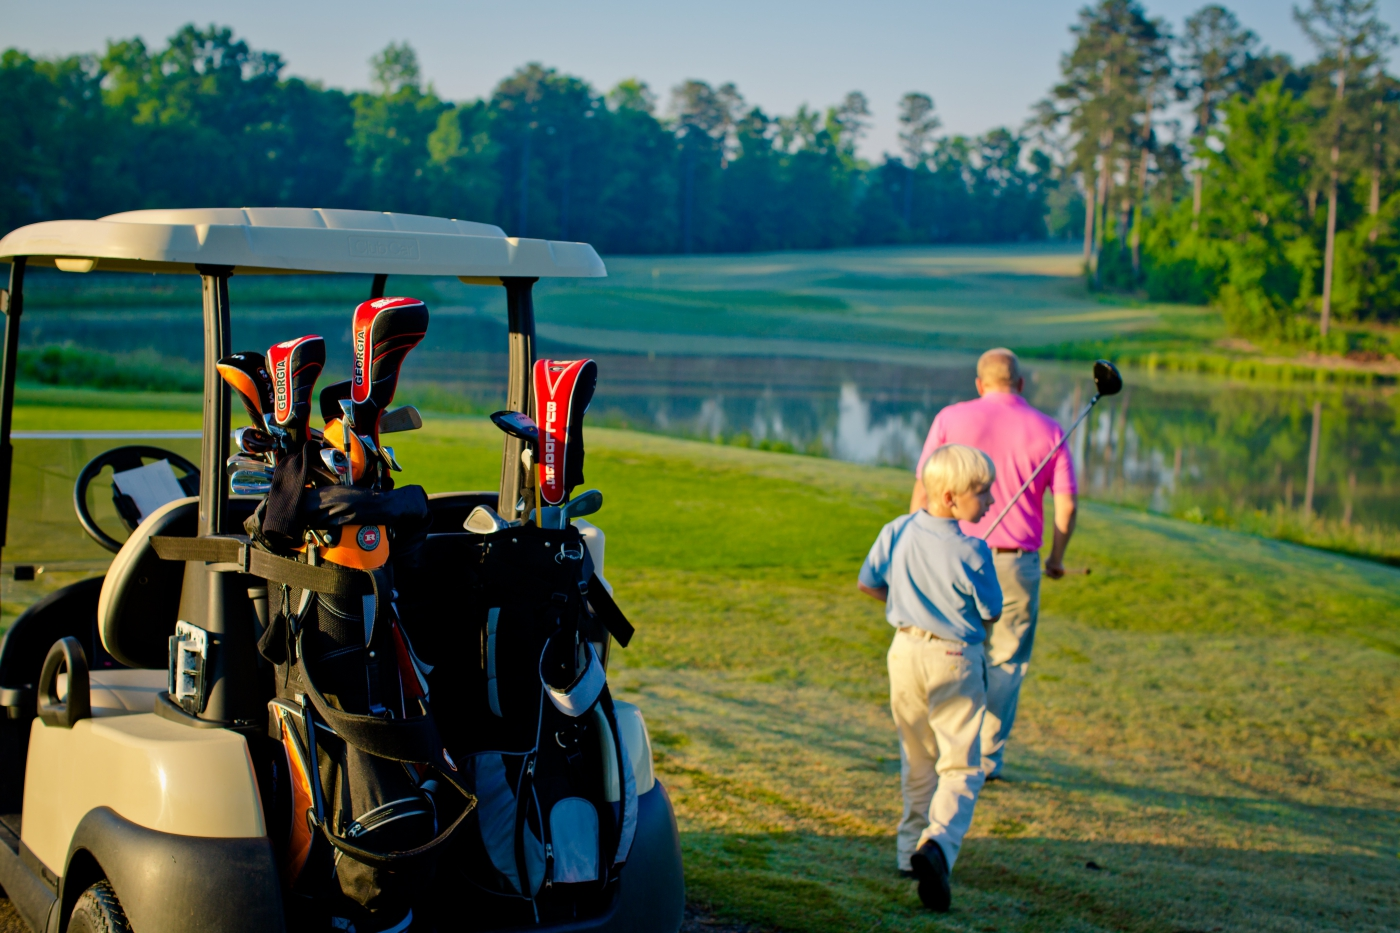 Georgia has more than 150 golf courses, clubs and schools, as well as the Masters Tournament played each year at Augusta National Golf Club.